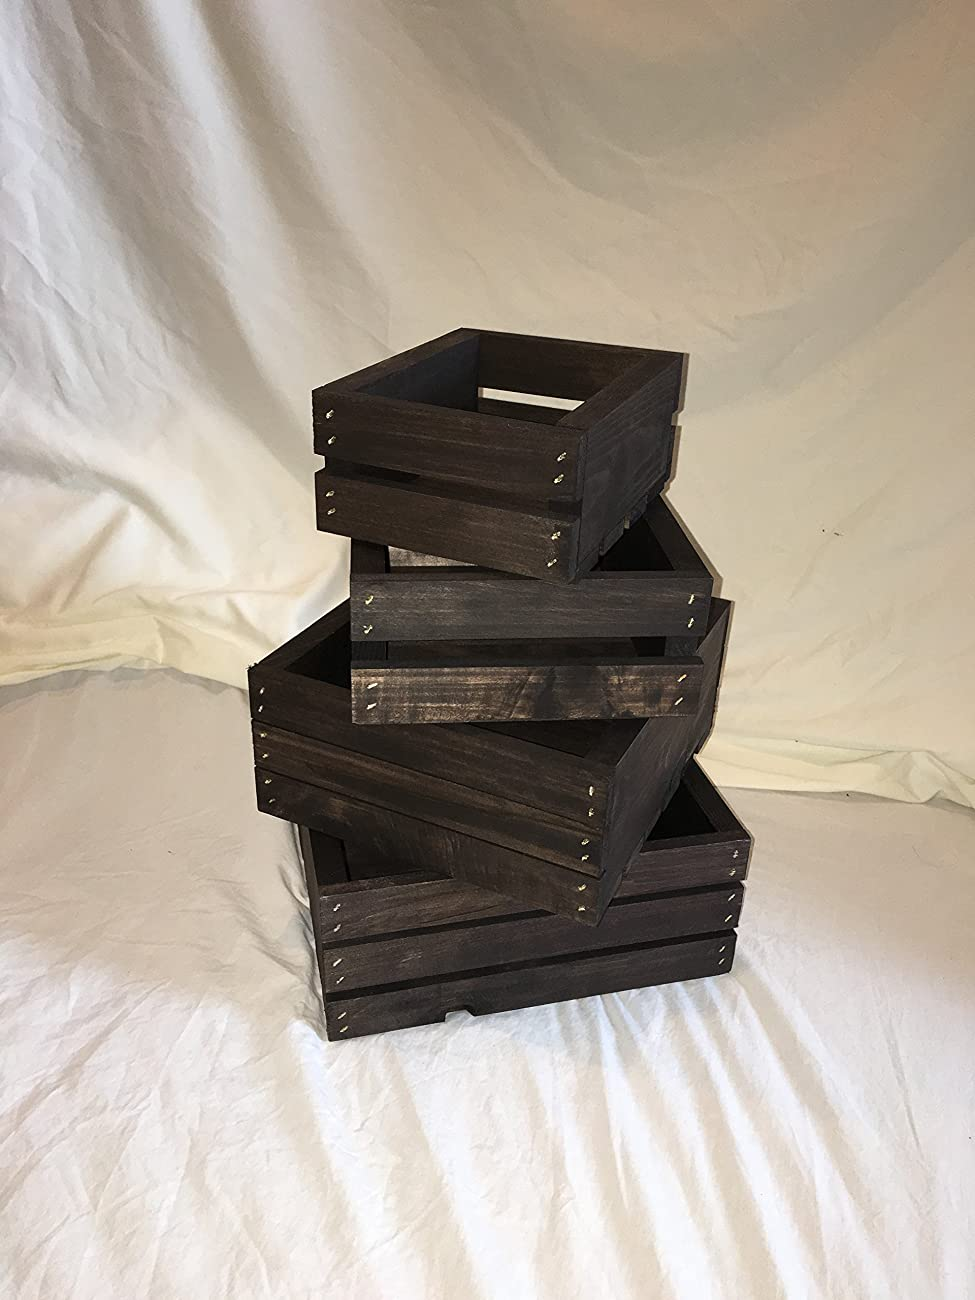 Vintage Stained- Rustic Wood Crates- Set of 4 1